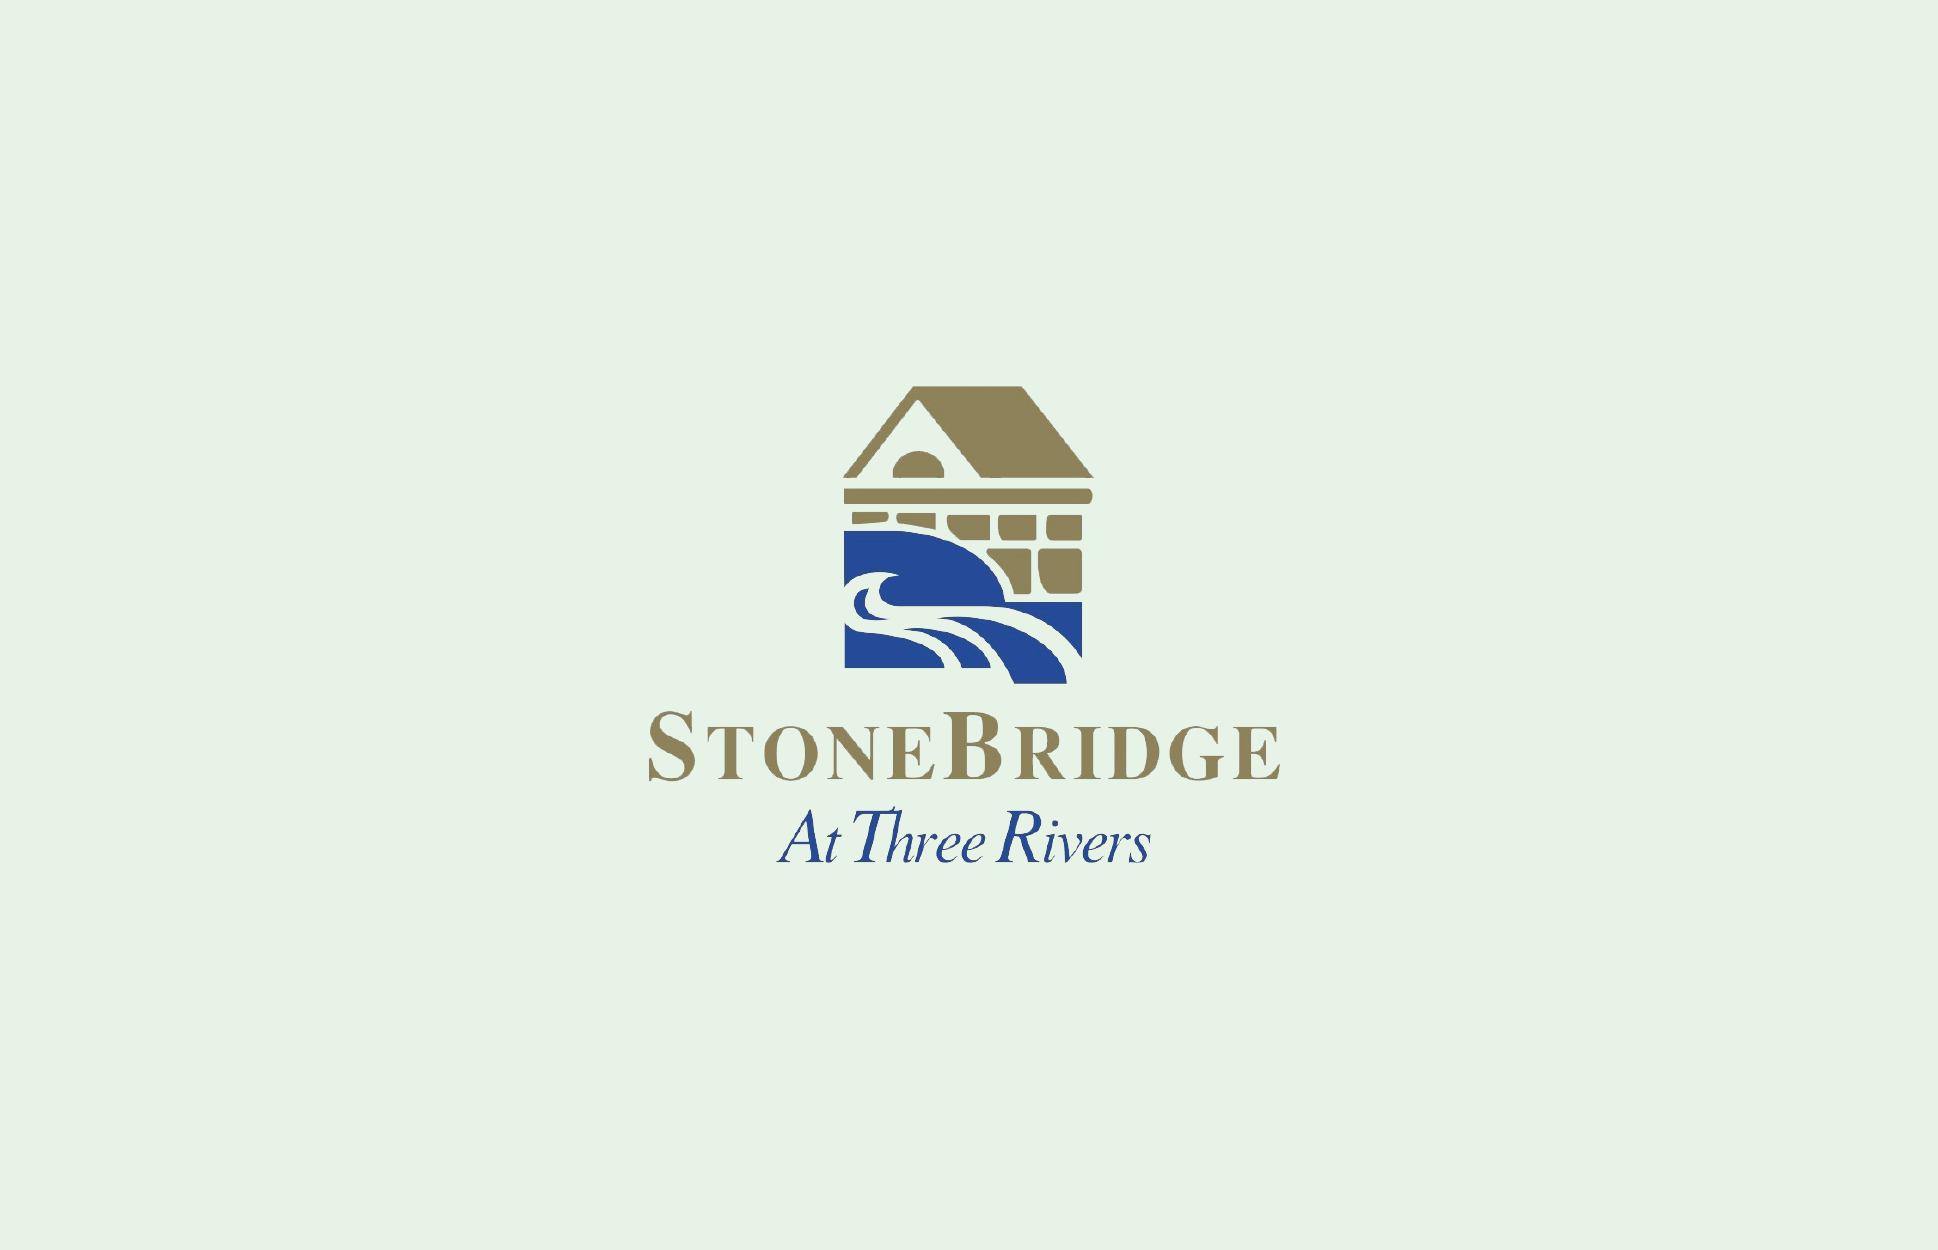 Stonebridge At Three Rivers